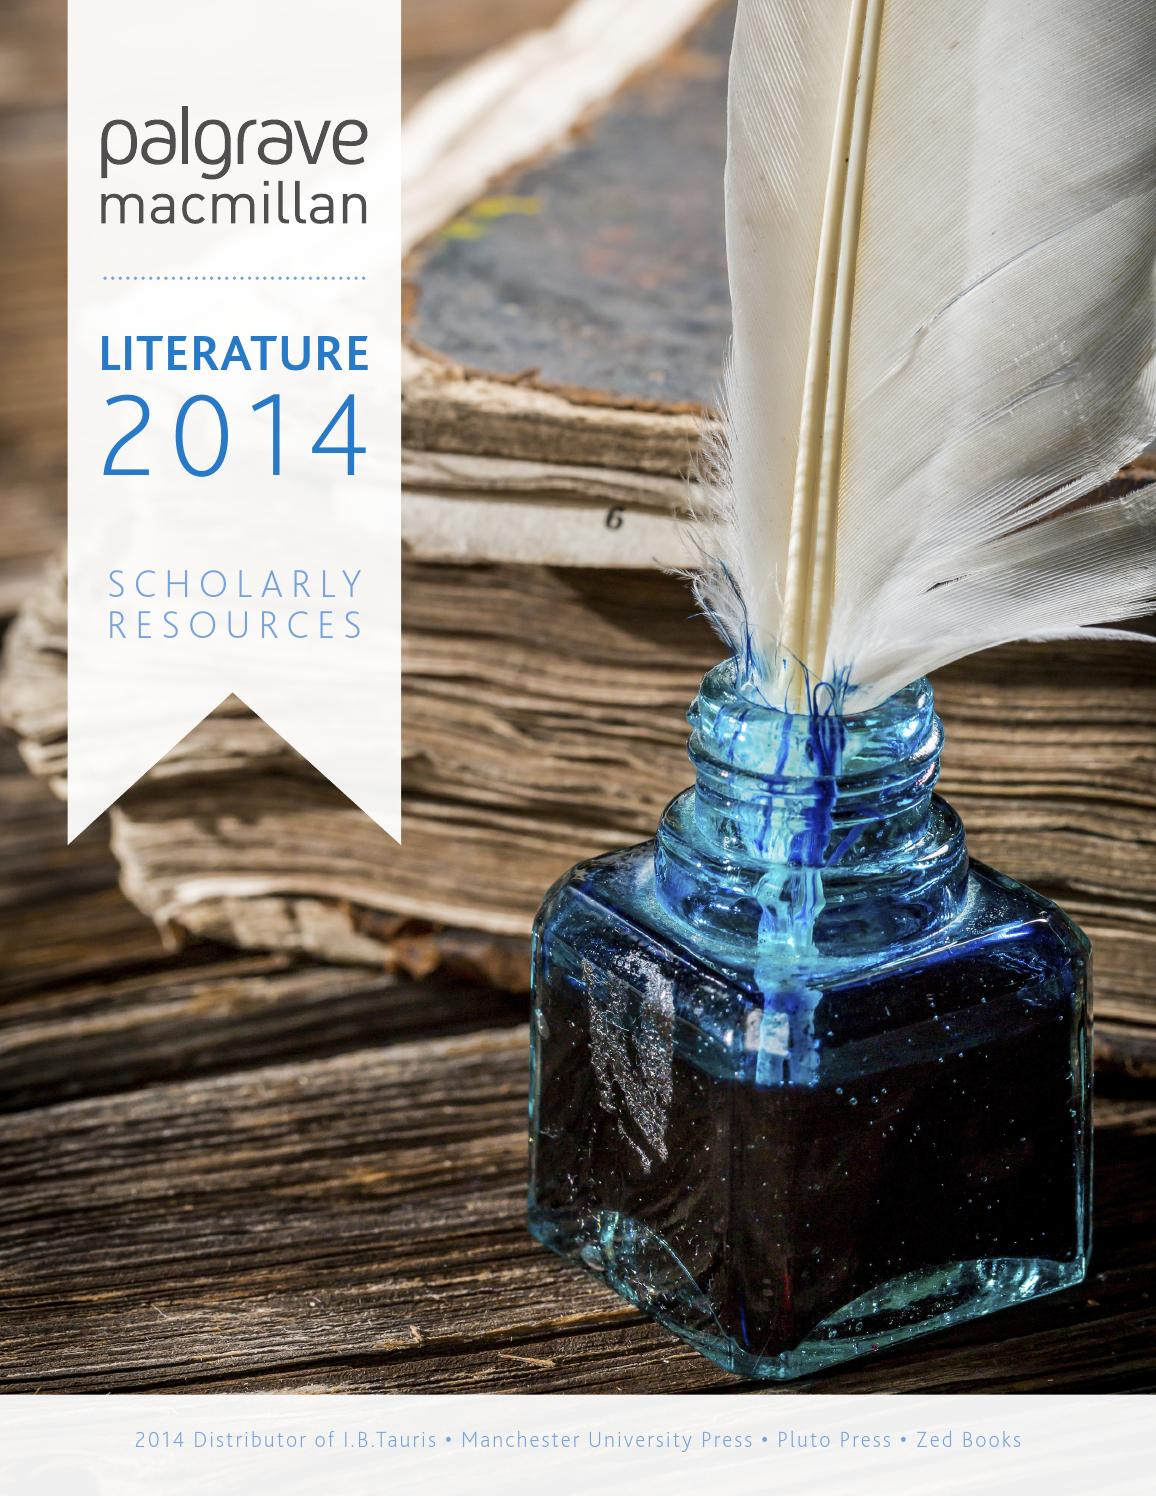 Literature catalogue 2014 by palgrave macmillan humanities issuu fandeluxe Choice Image